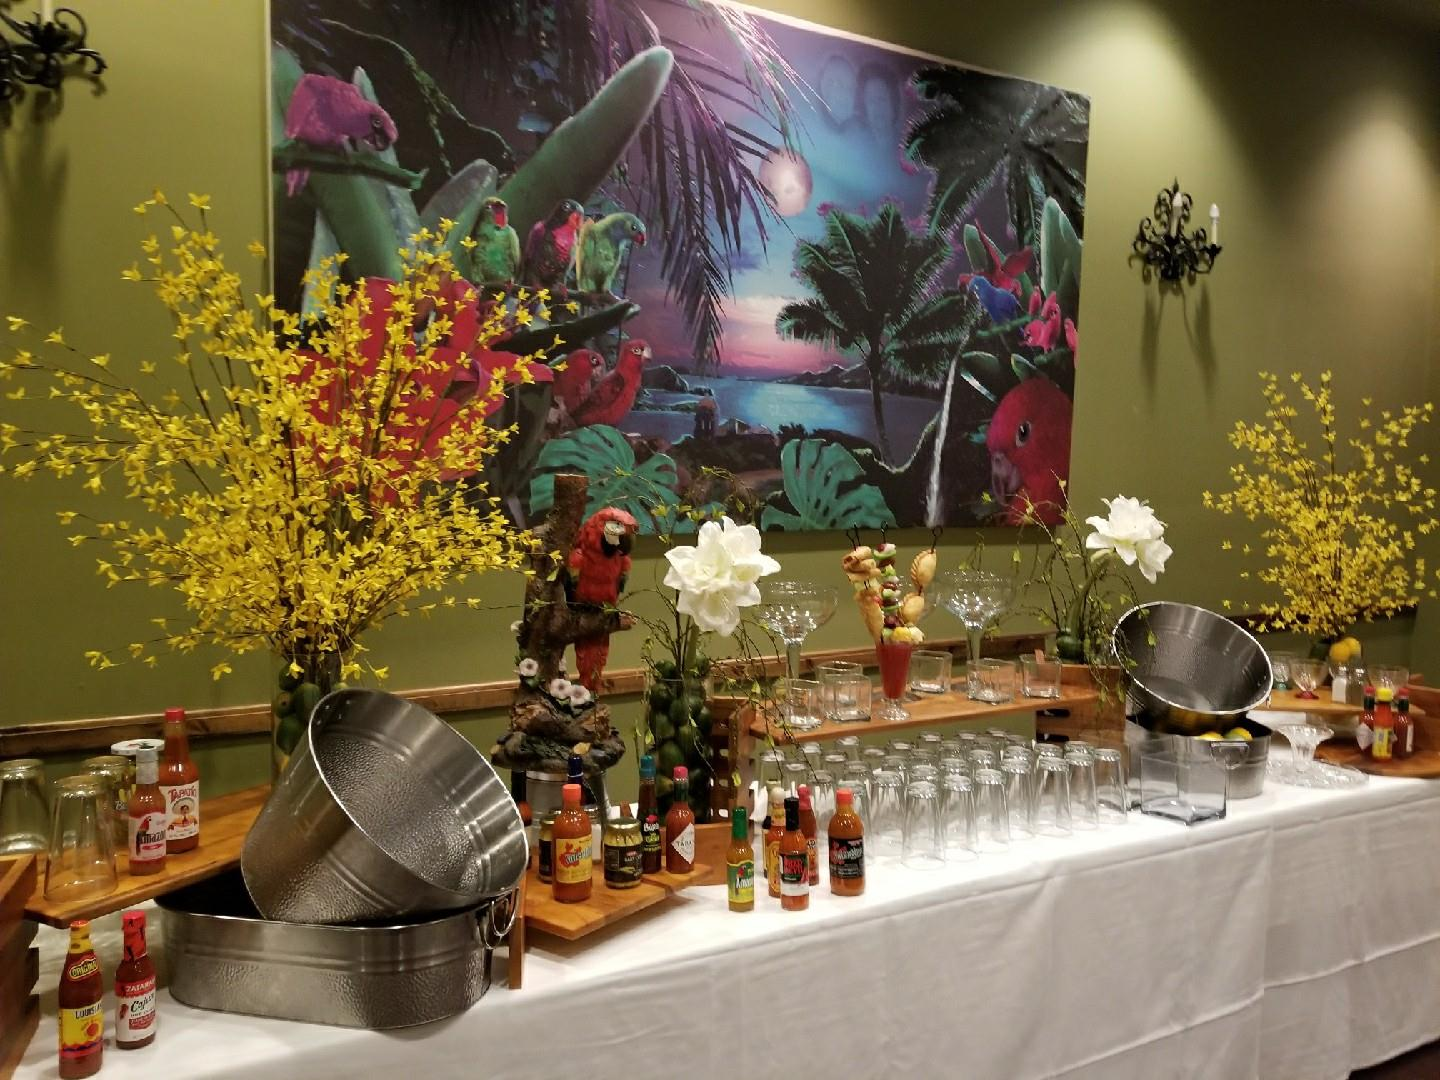 Catering setup on a table with glasses, an assortment of hot sauces, flowers and artwork hanging on the wall